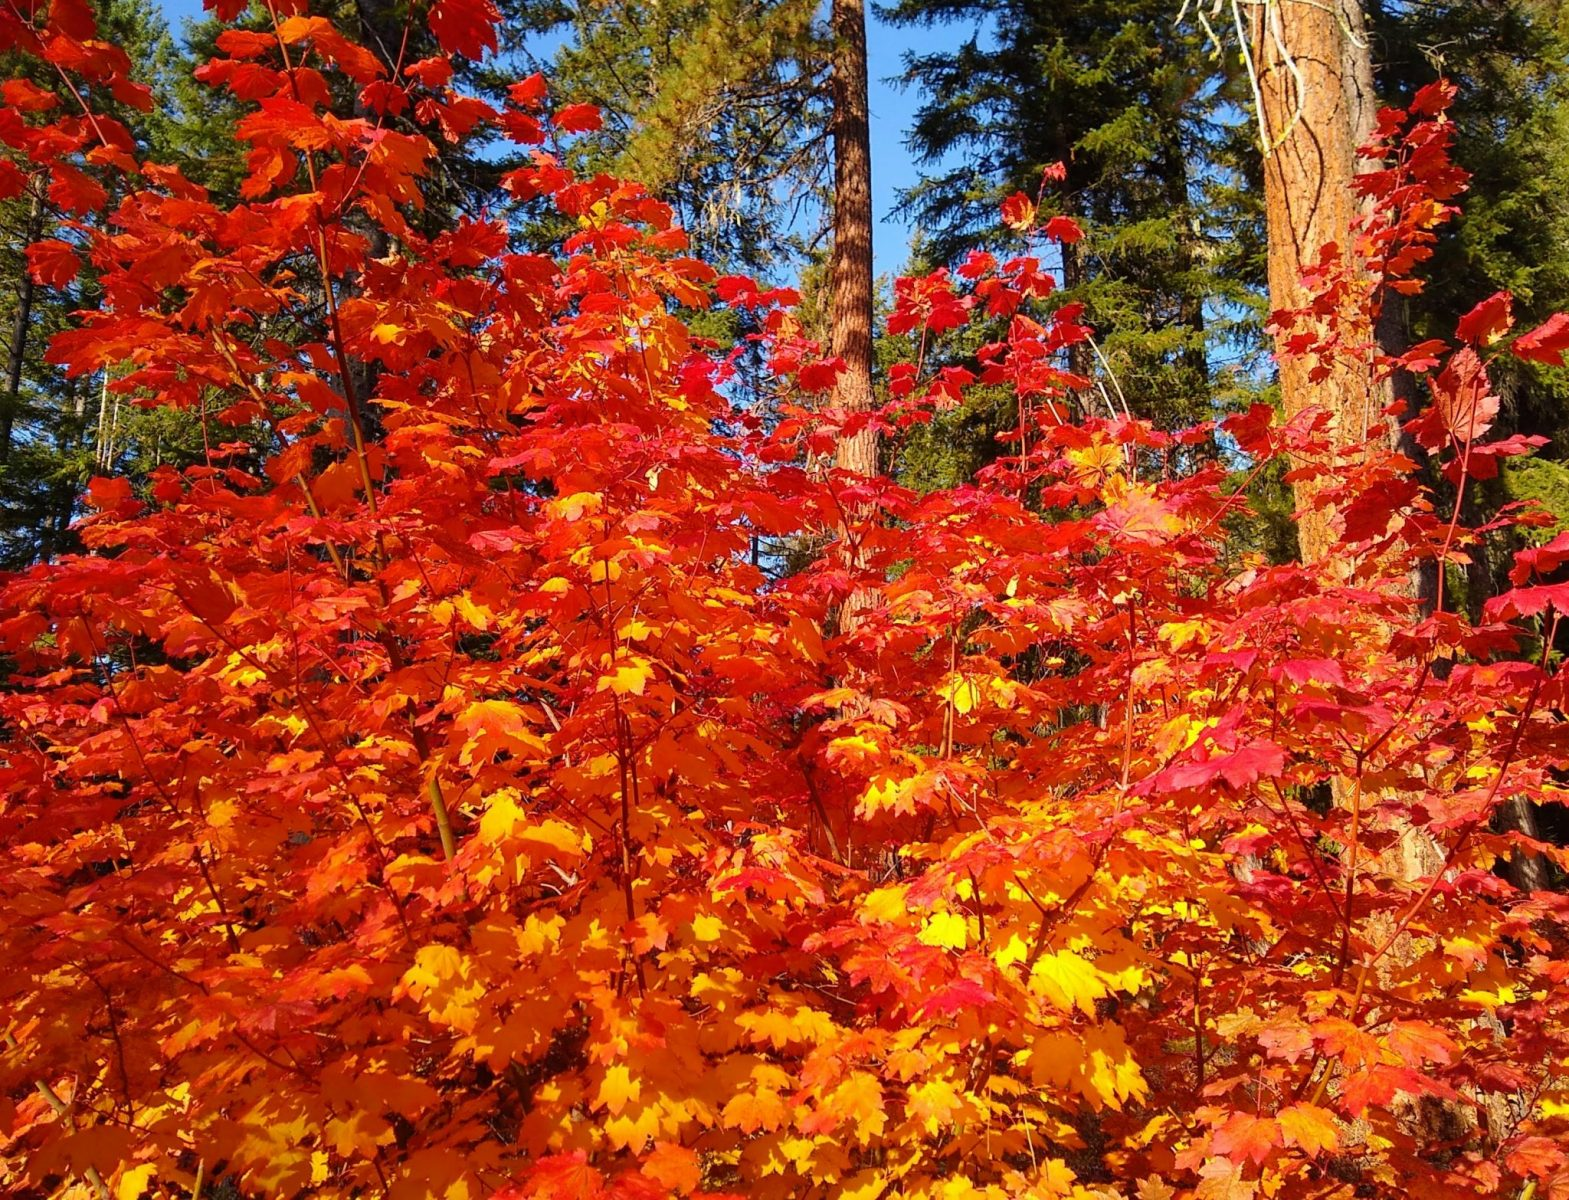 Red and orange vine maples on a sunny day with evergreen trees in the lake wenatchee state park